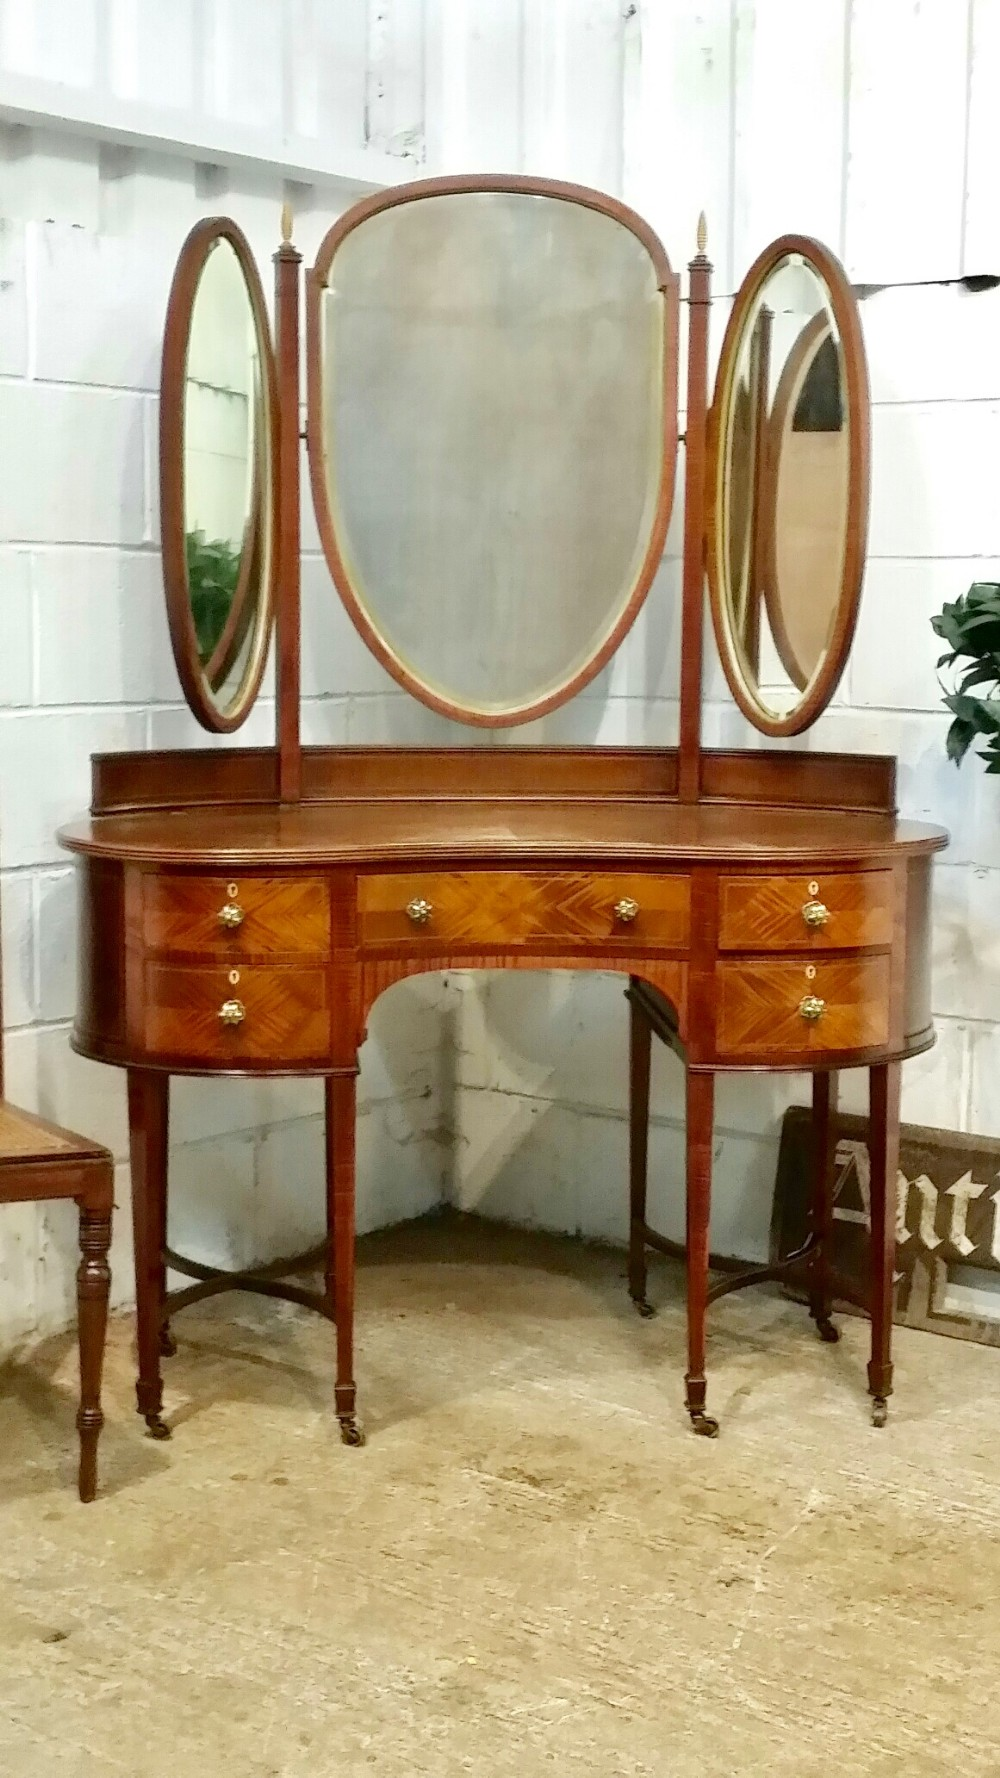 antique edwardian sheraton walnut serpentine shaped dressing table c1900